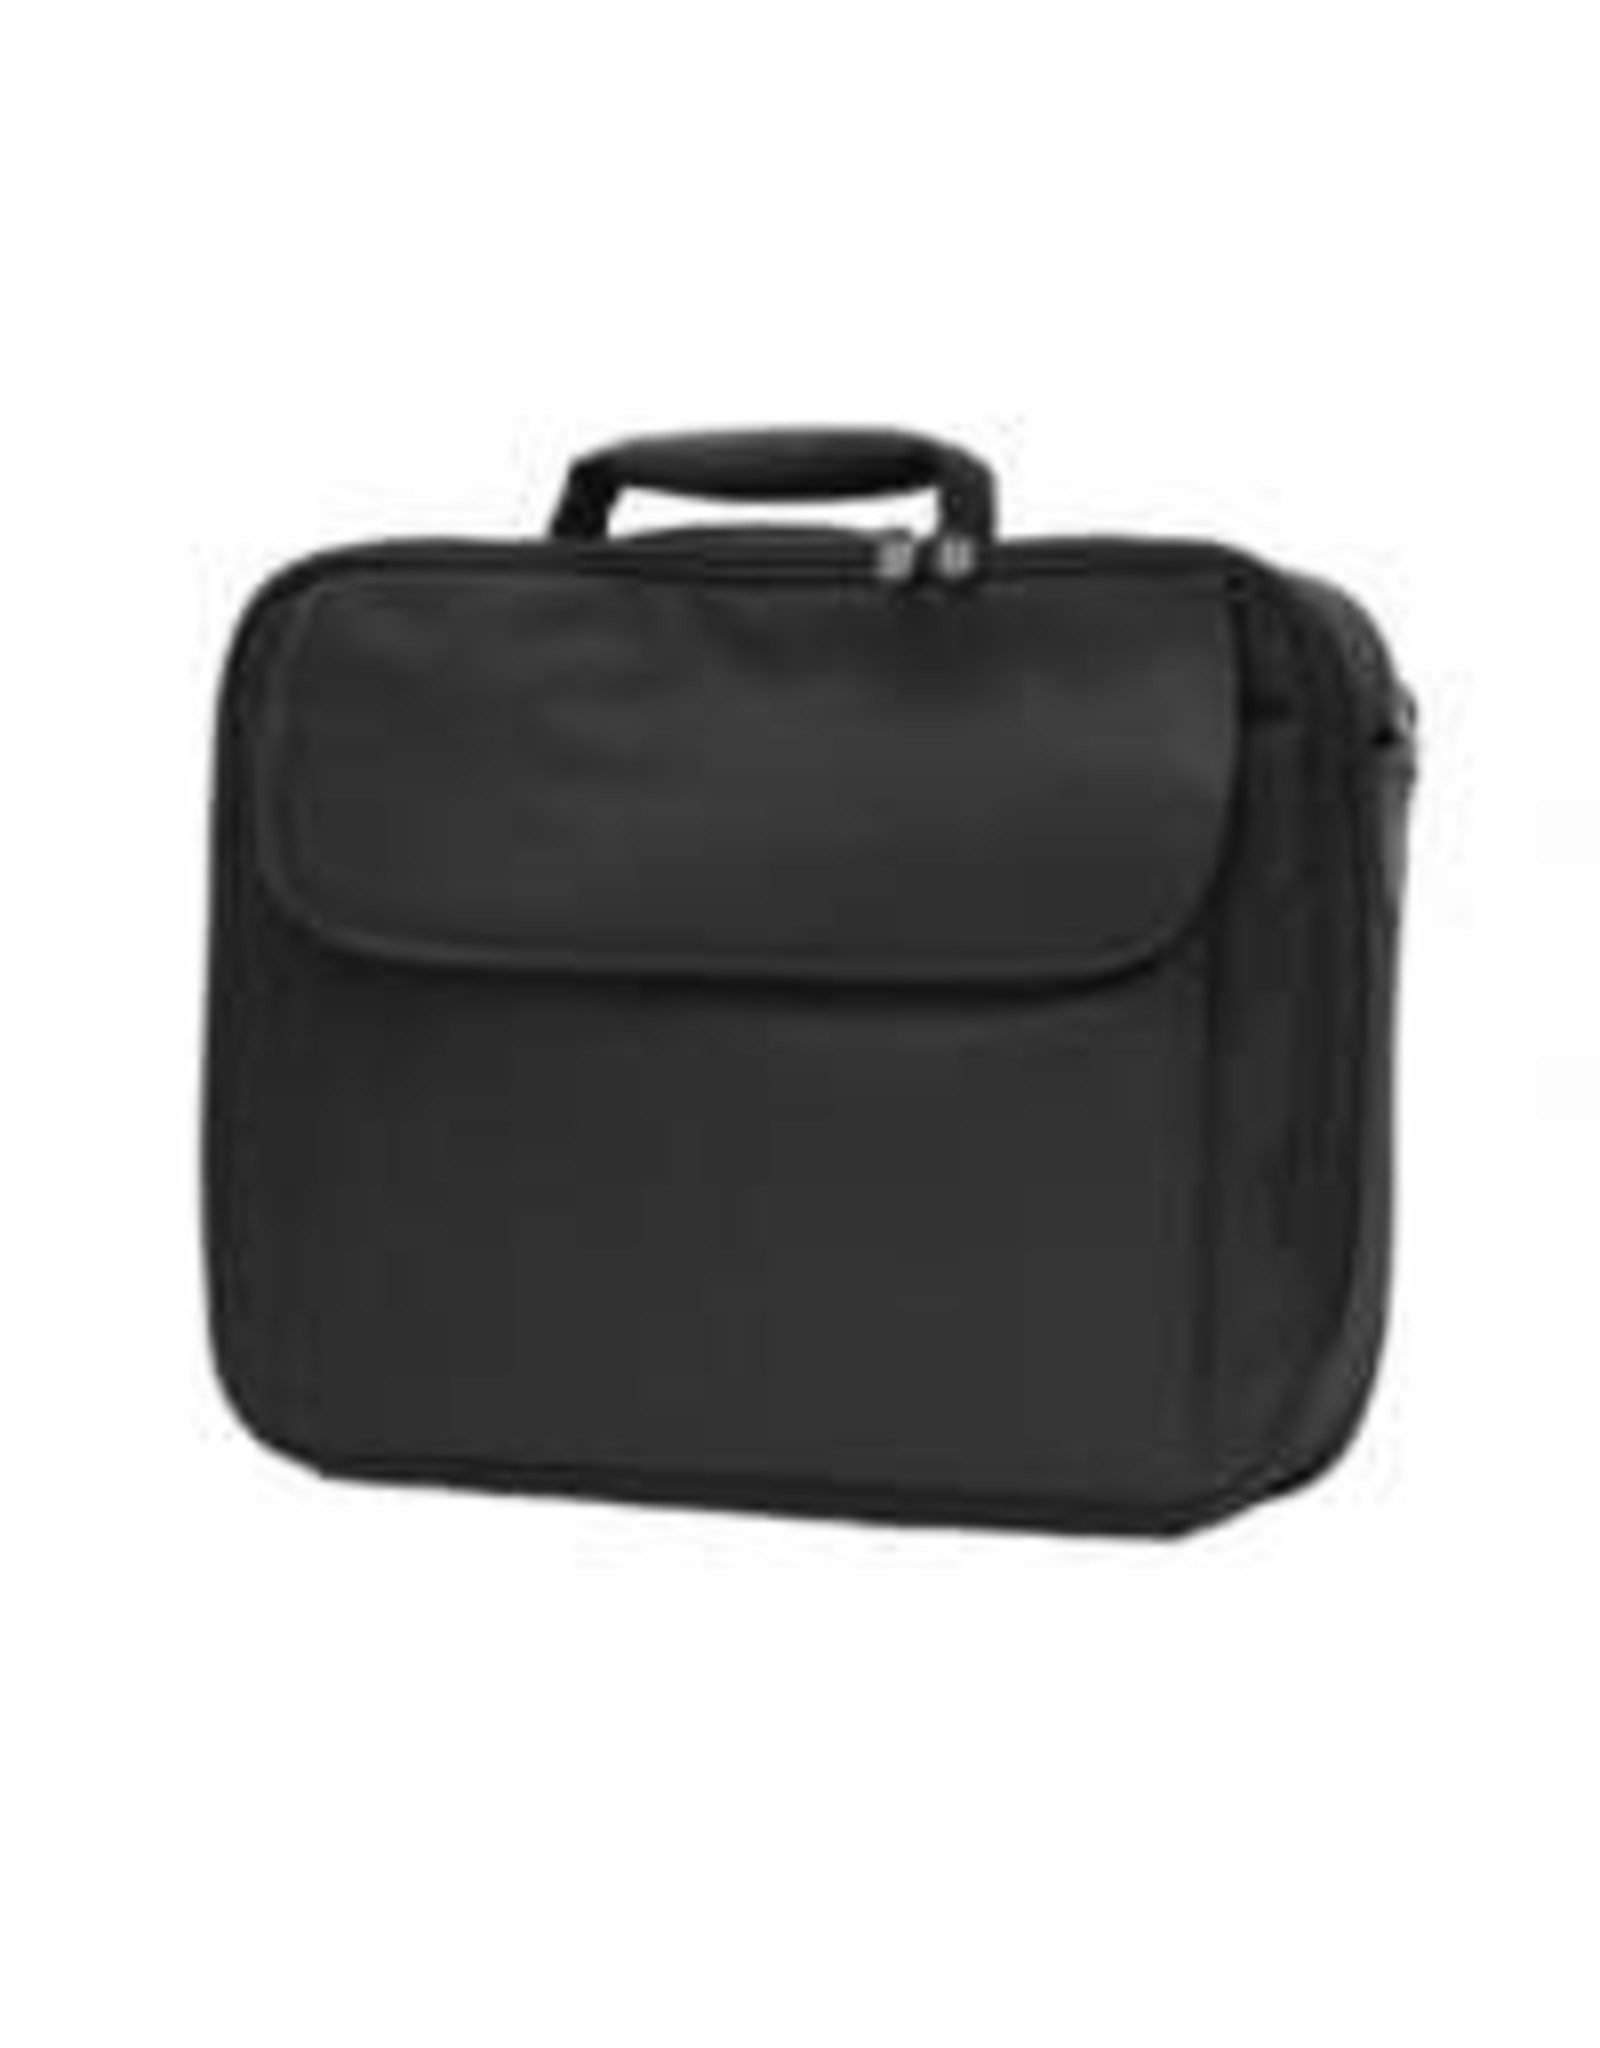 Ewent CITY Notebook Office Bag 15.6 - 16.1 inch